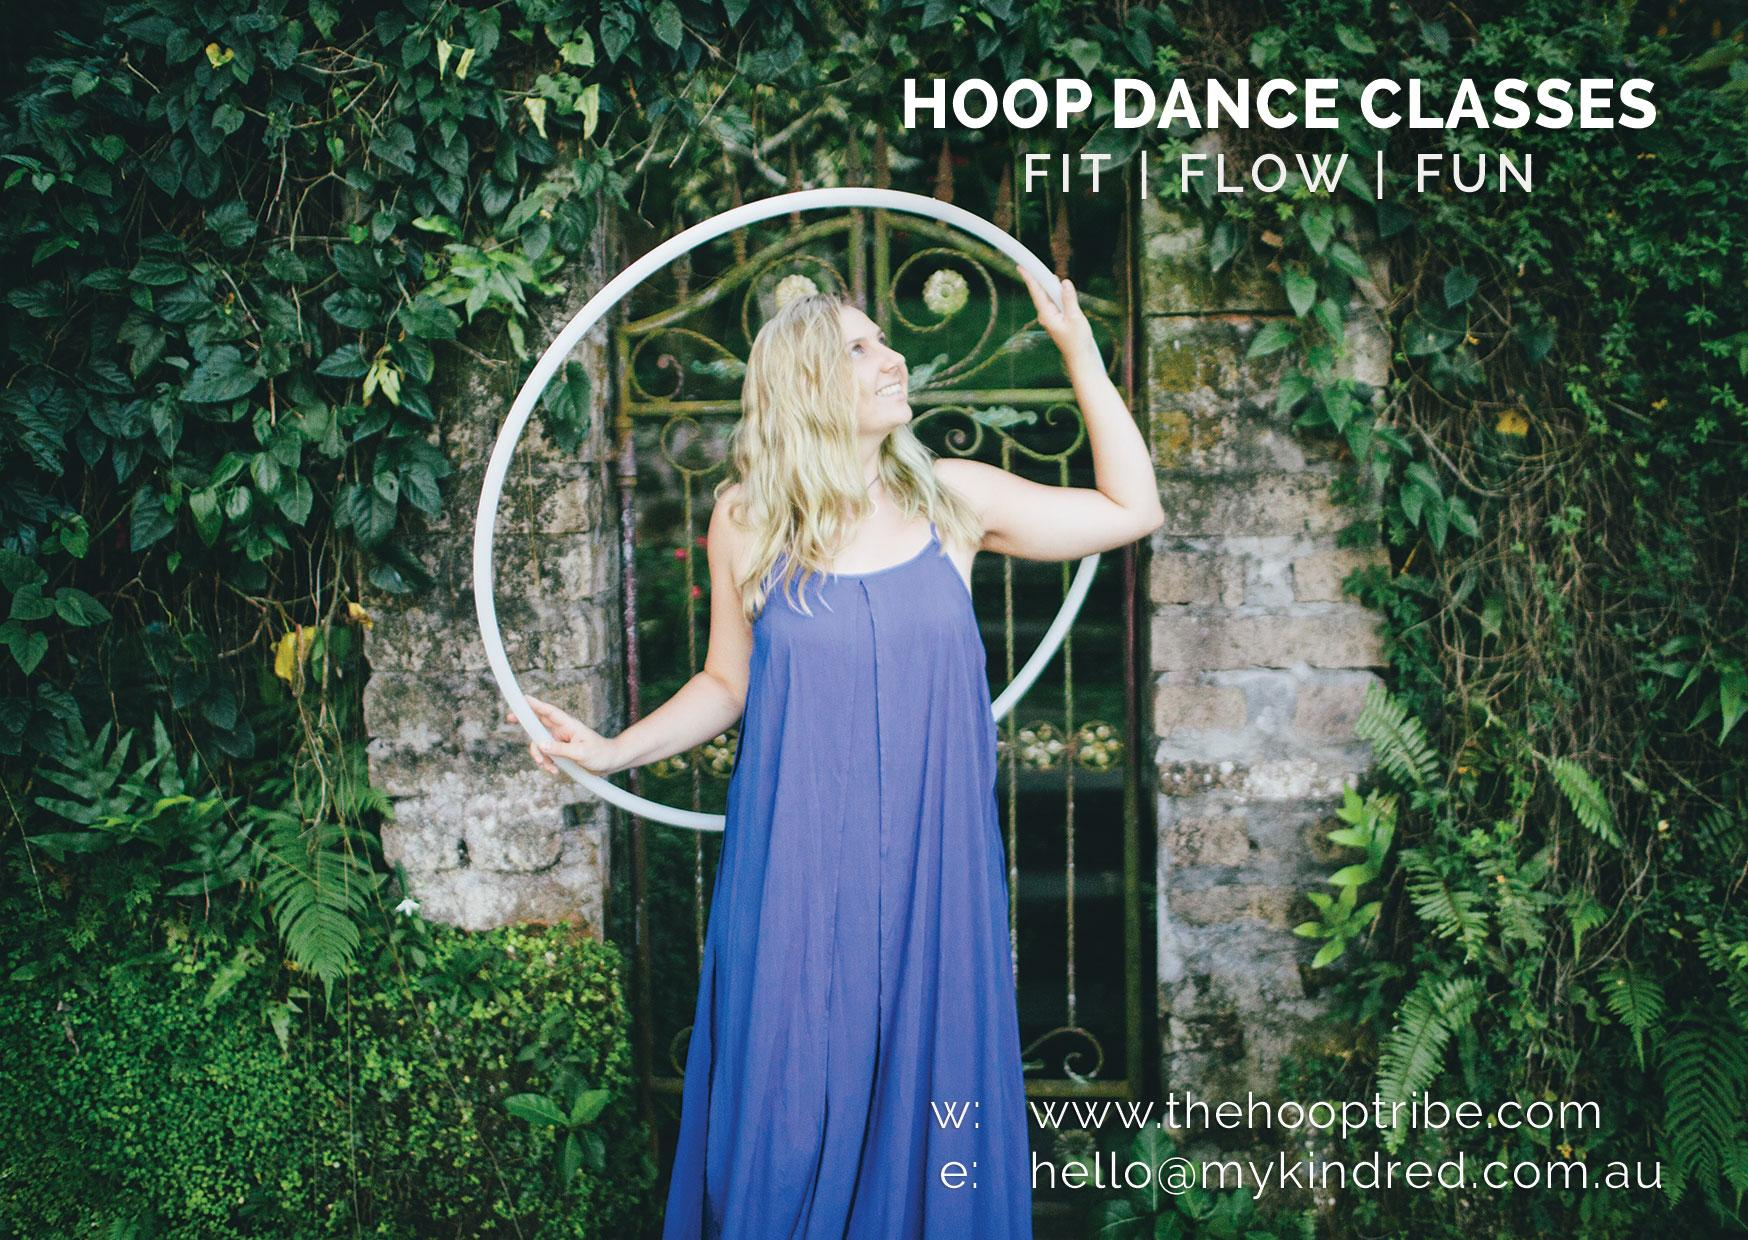 Beginners Hoop Dance Course (for adults) Term 2